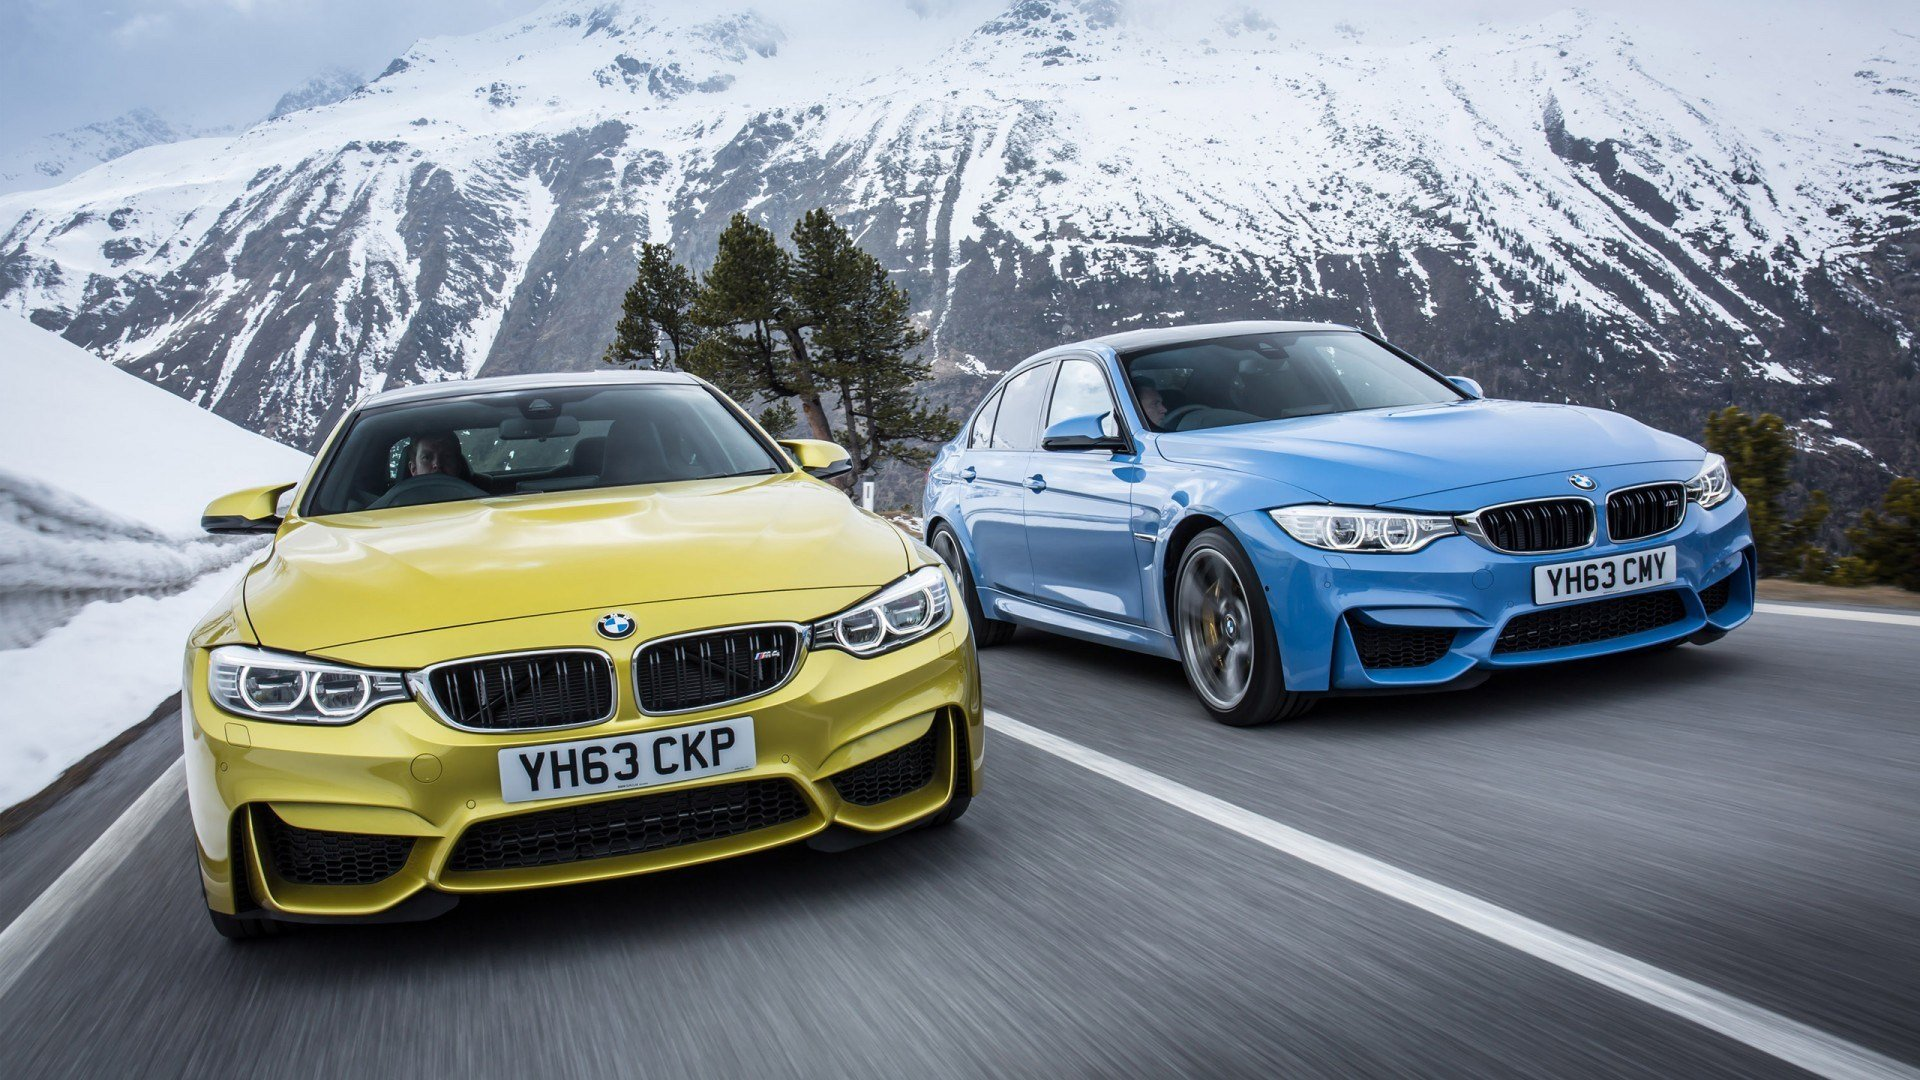 Latest 2014 Bmw M4 Coupe Uk Wallpaper Hd Car Wallpapers Id 4606 Free Download